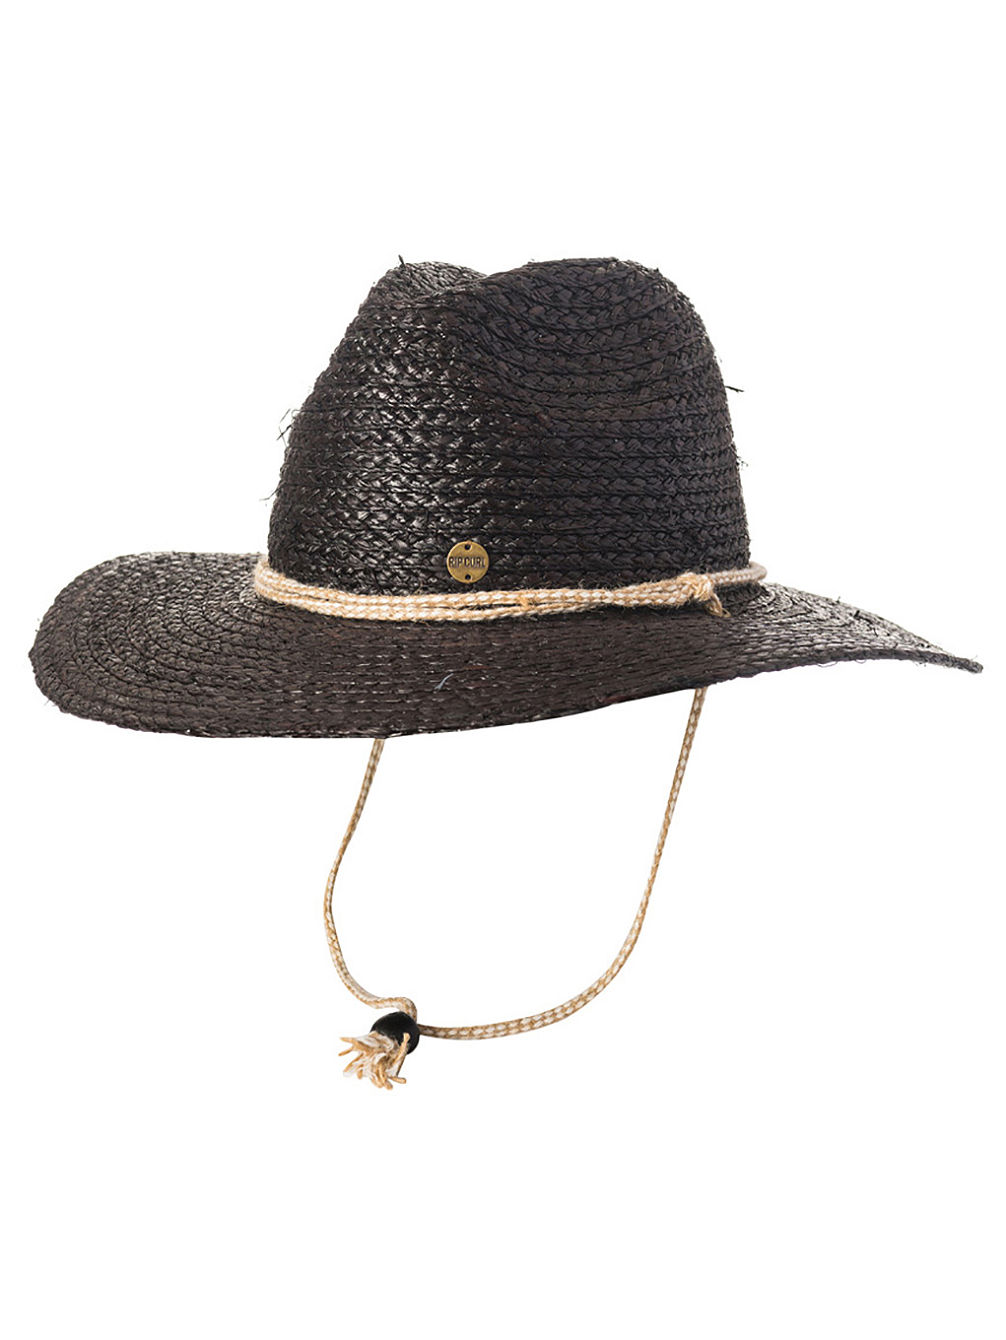 Outwest Panama Hat